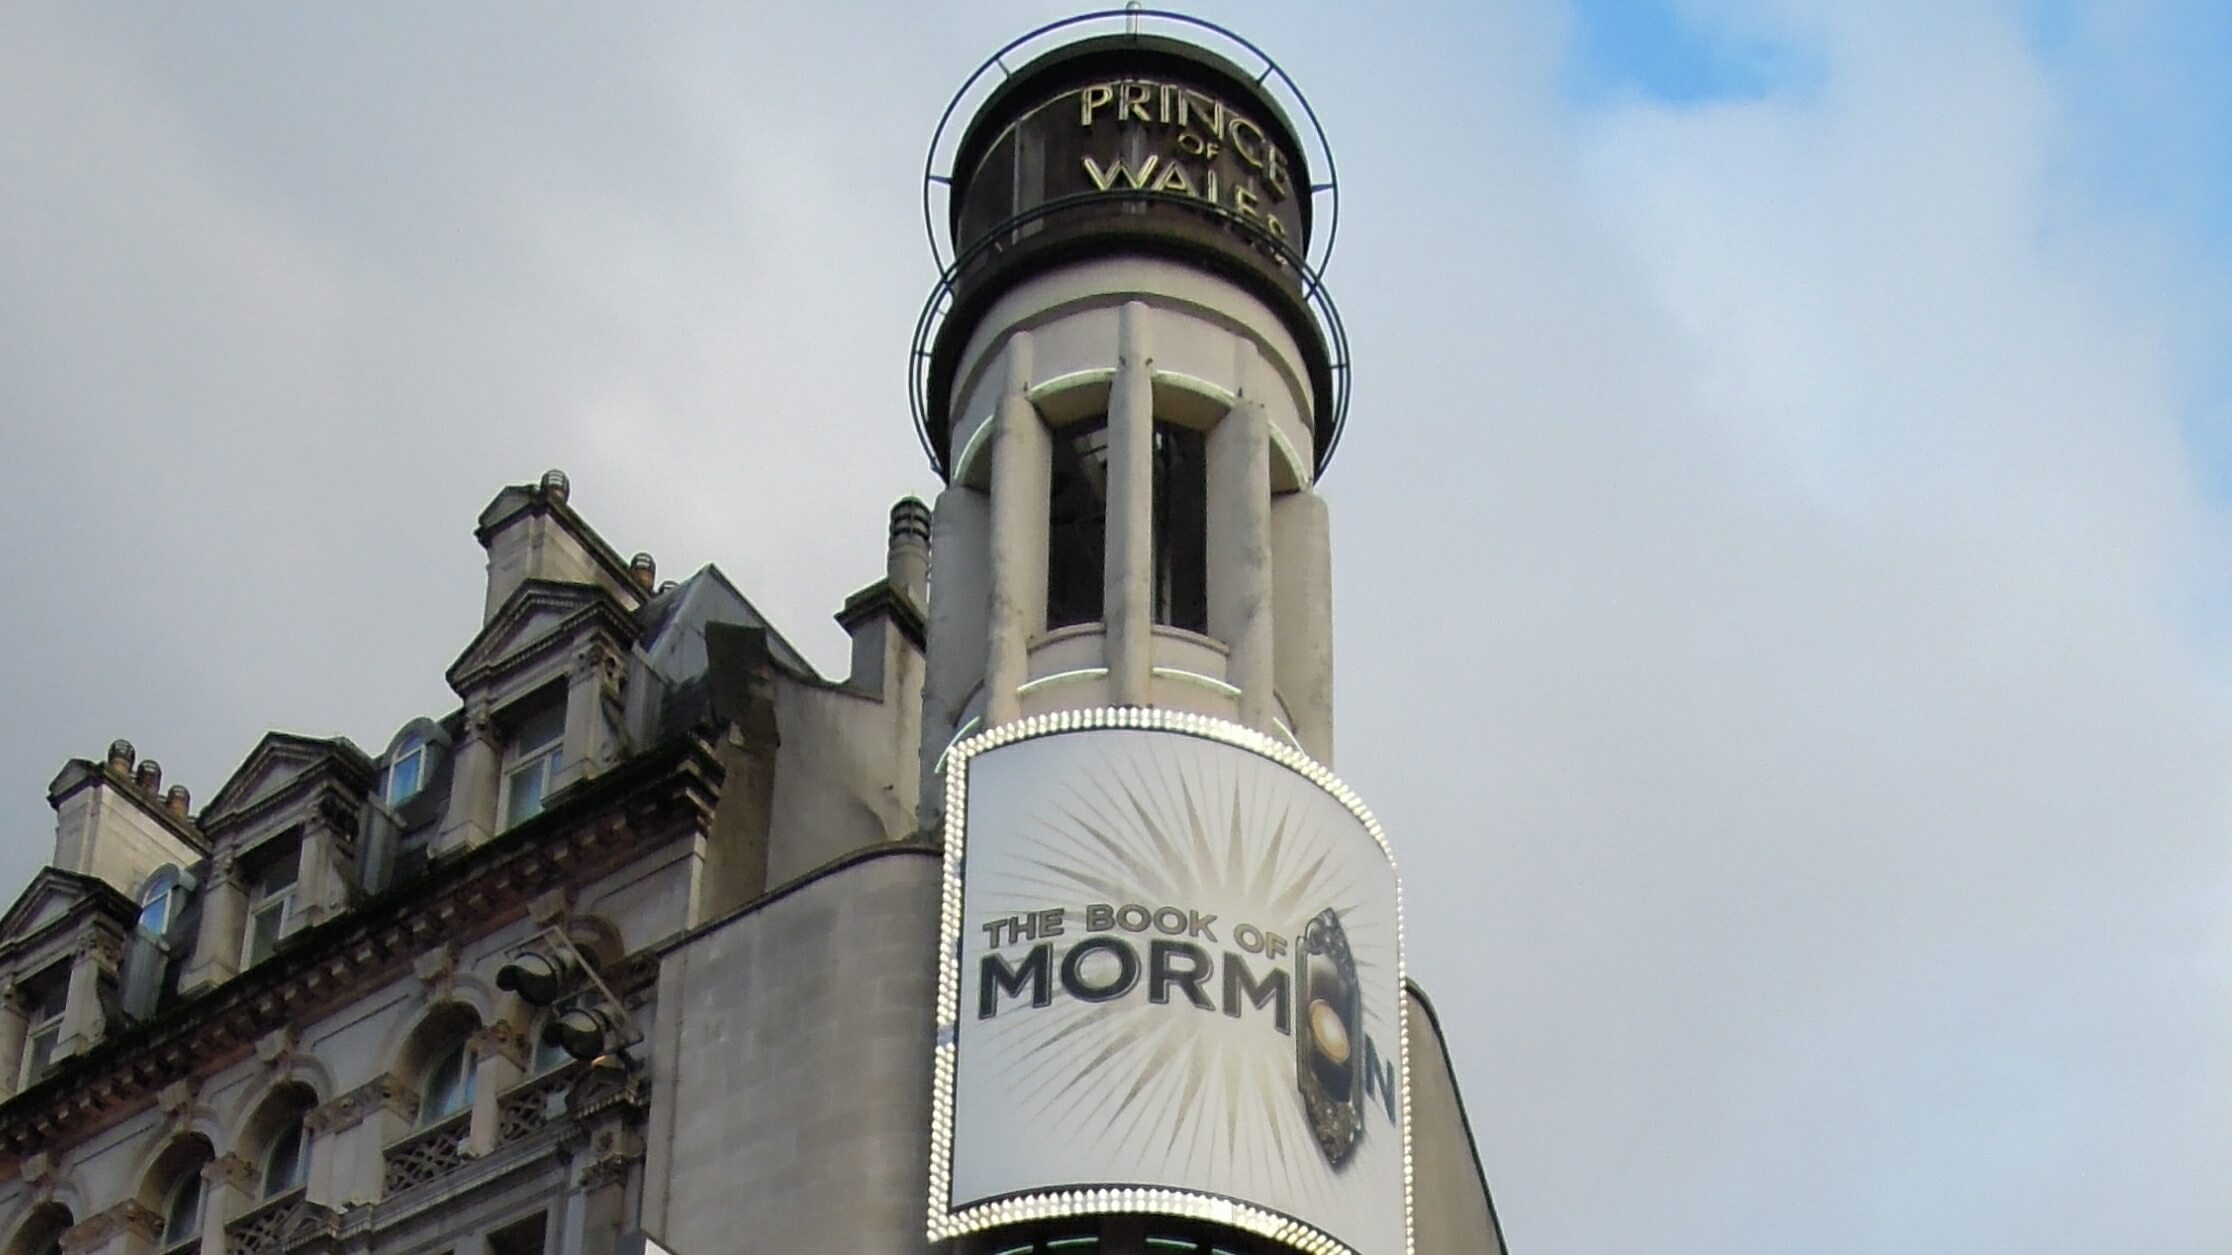 The Prince of Wales Theatre, London. (Photo Credit: David McKelvey via flickr)